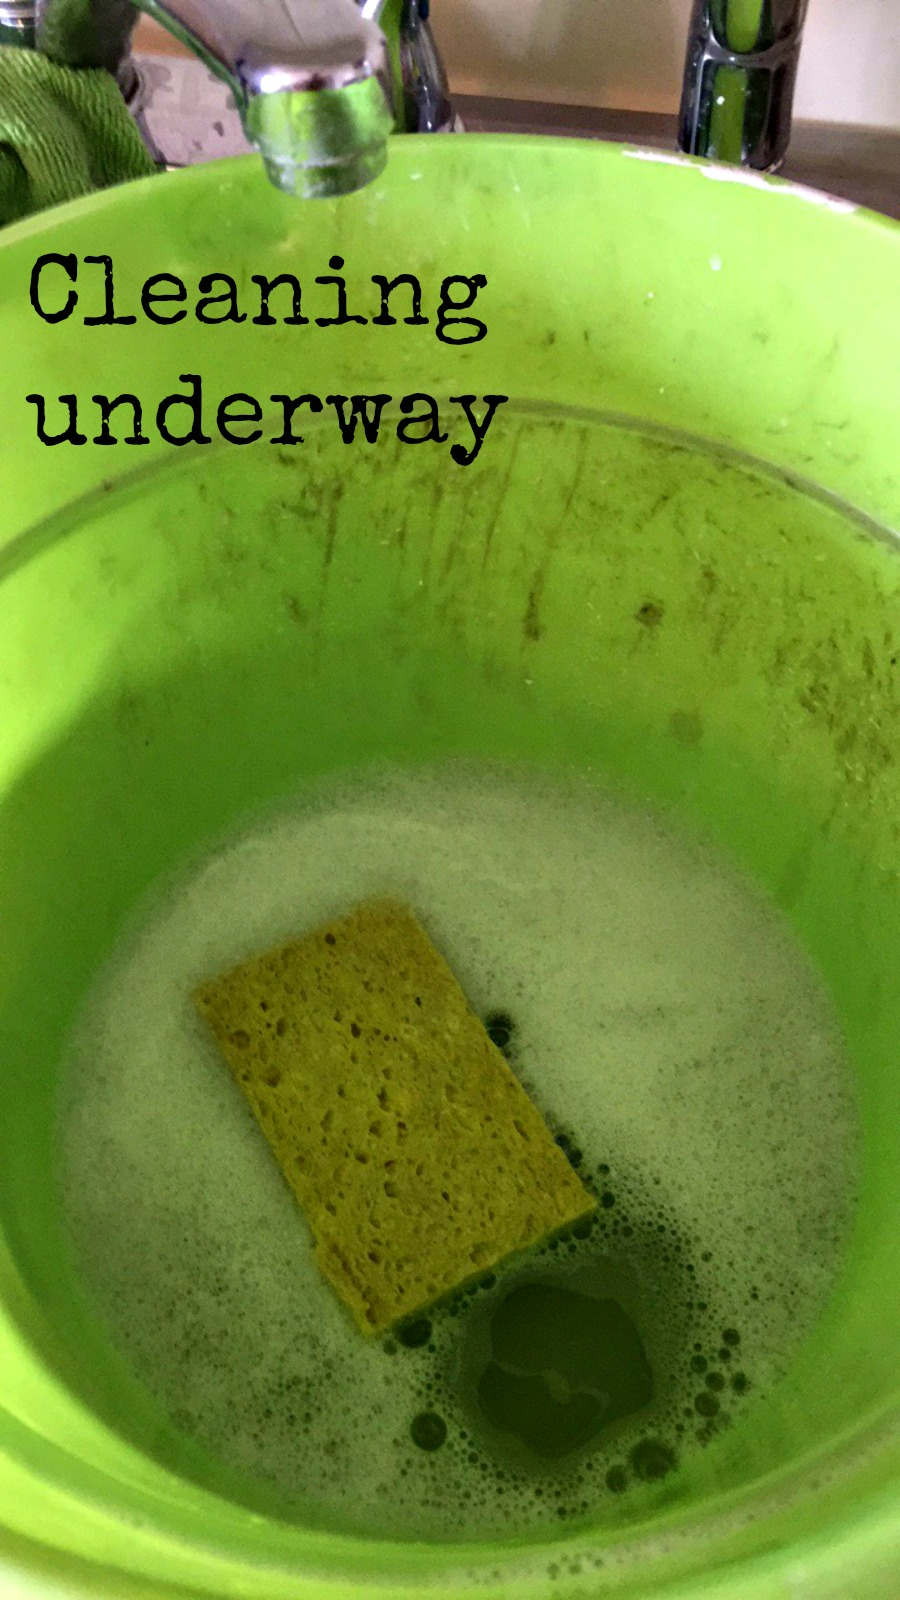 Bucket and sponge for cleaning